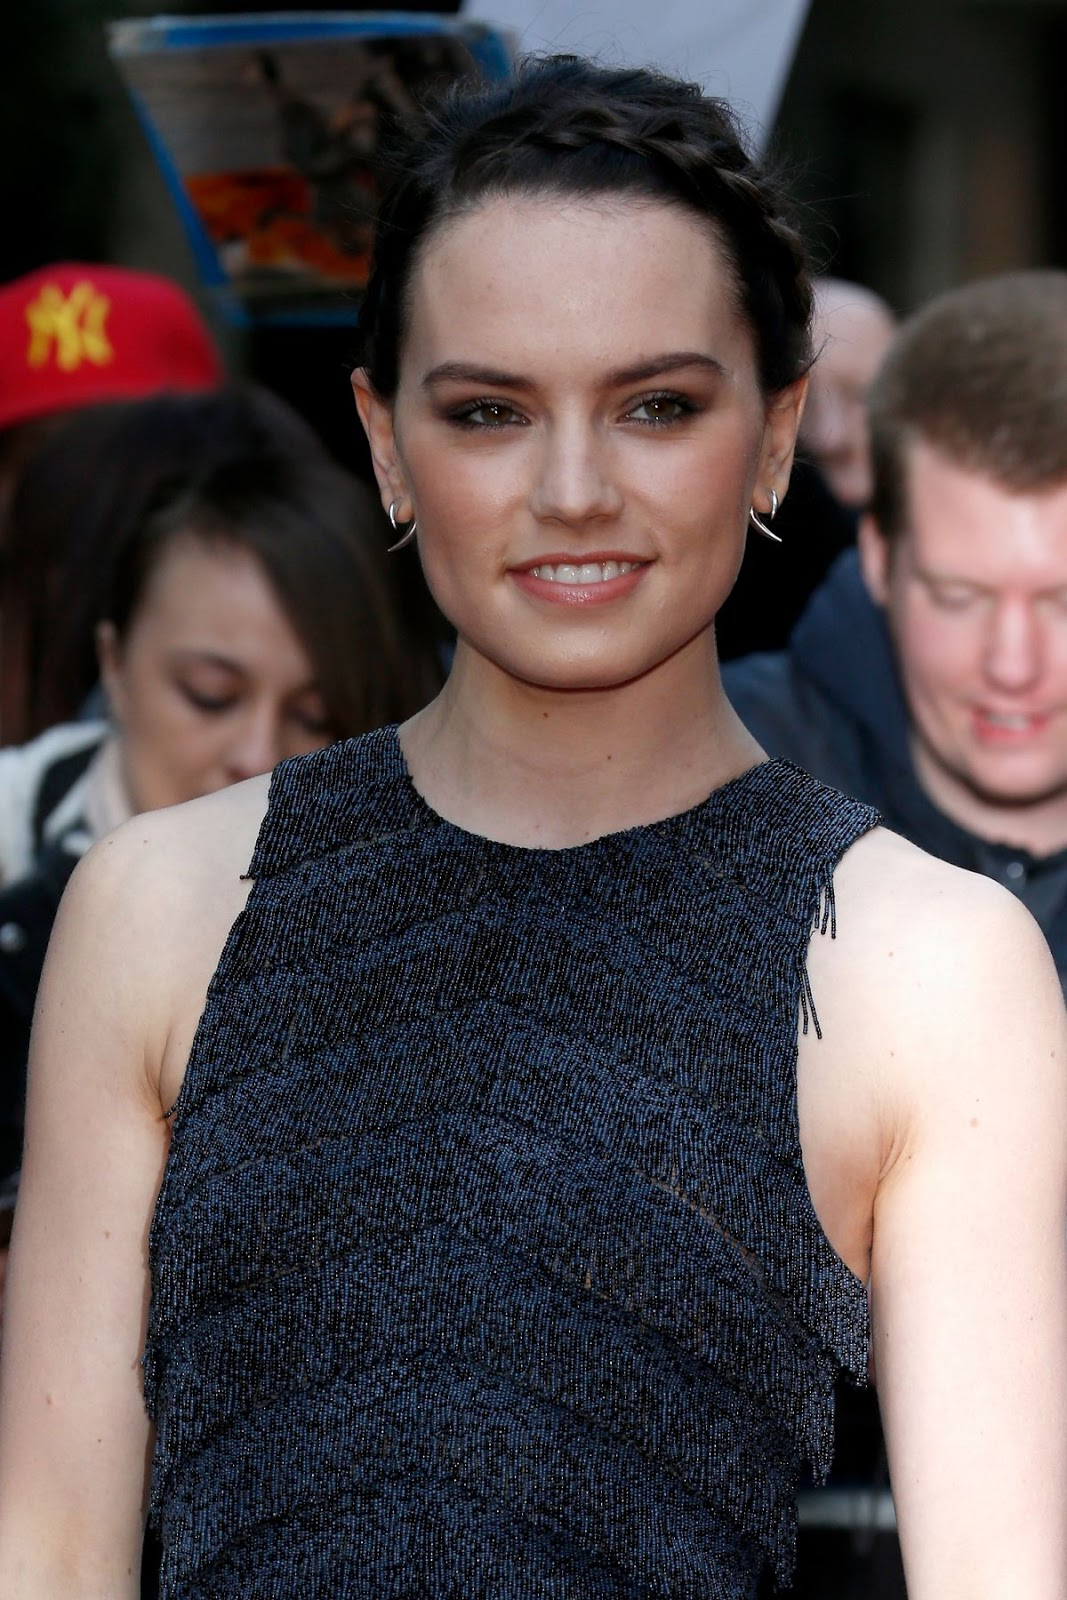 Star Wars - The Force Awakens actress Daisy Ridley at Empire Awards 2016